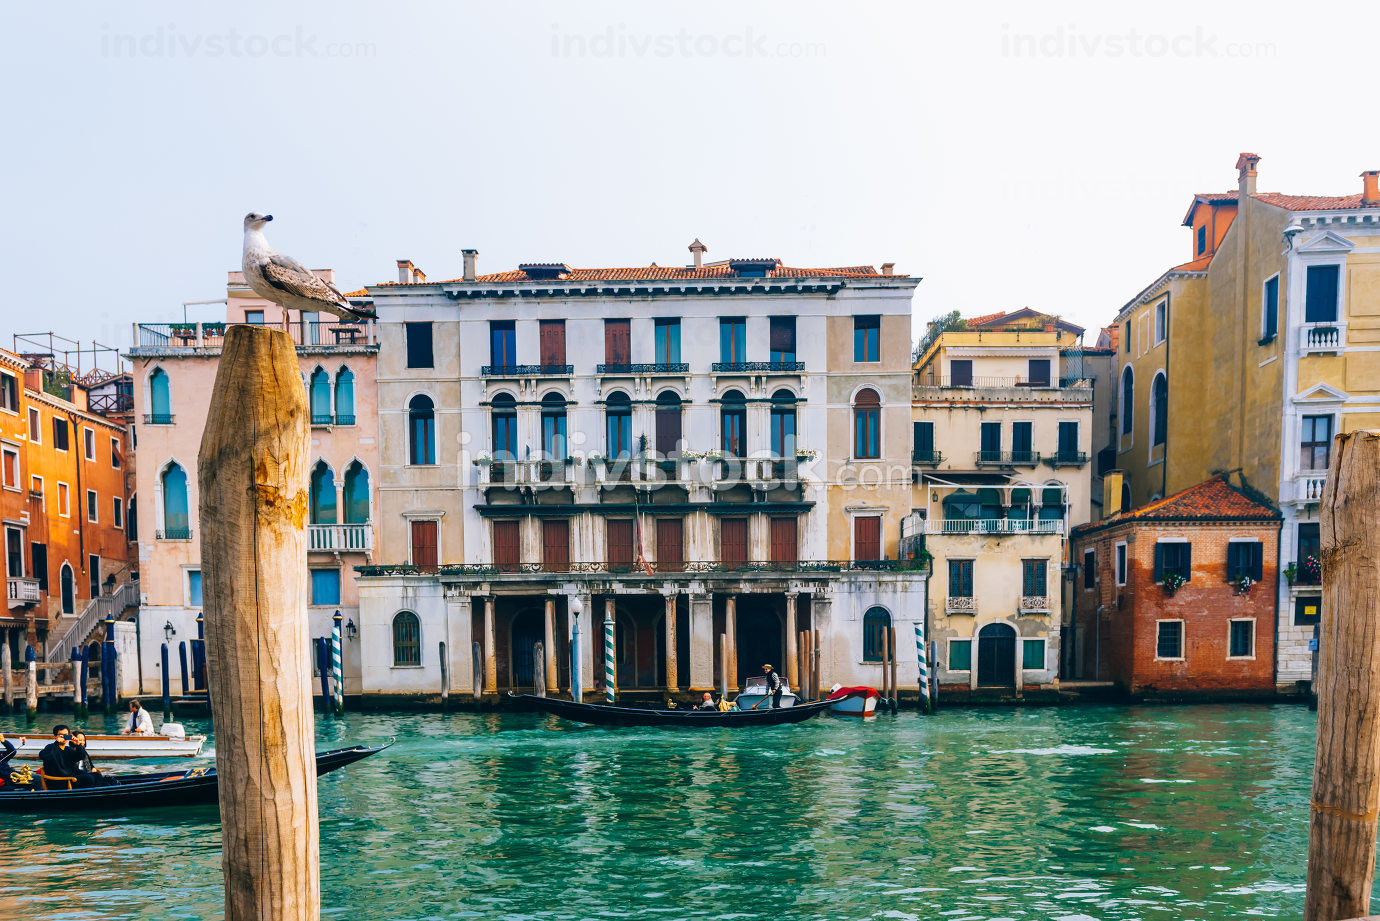 Grand canal of Venice Italy